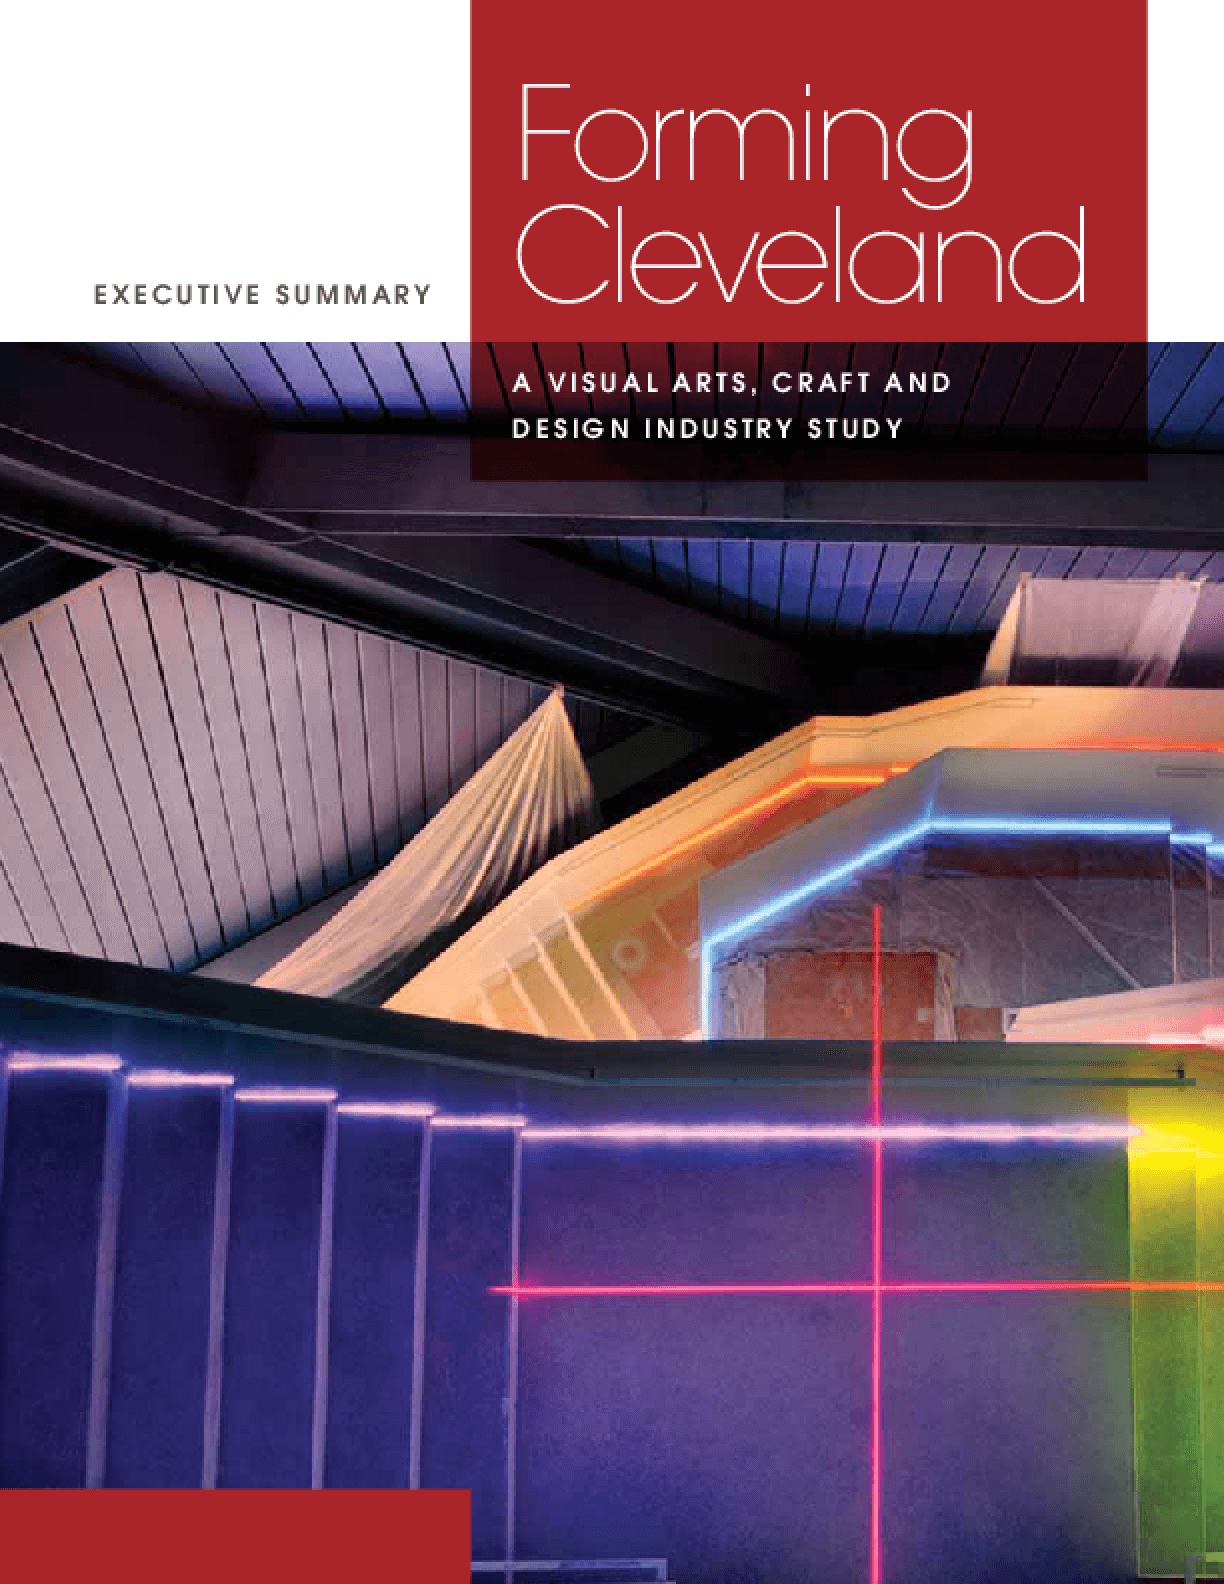 Forming Cleveland: A Visual Arts, Craft and Design Industry Study - Executive Summary